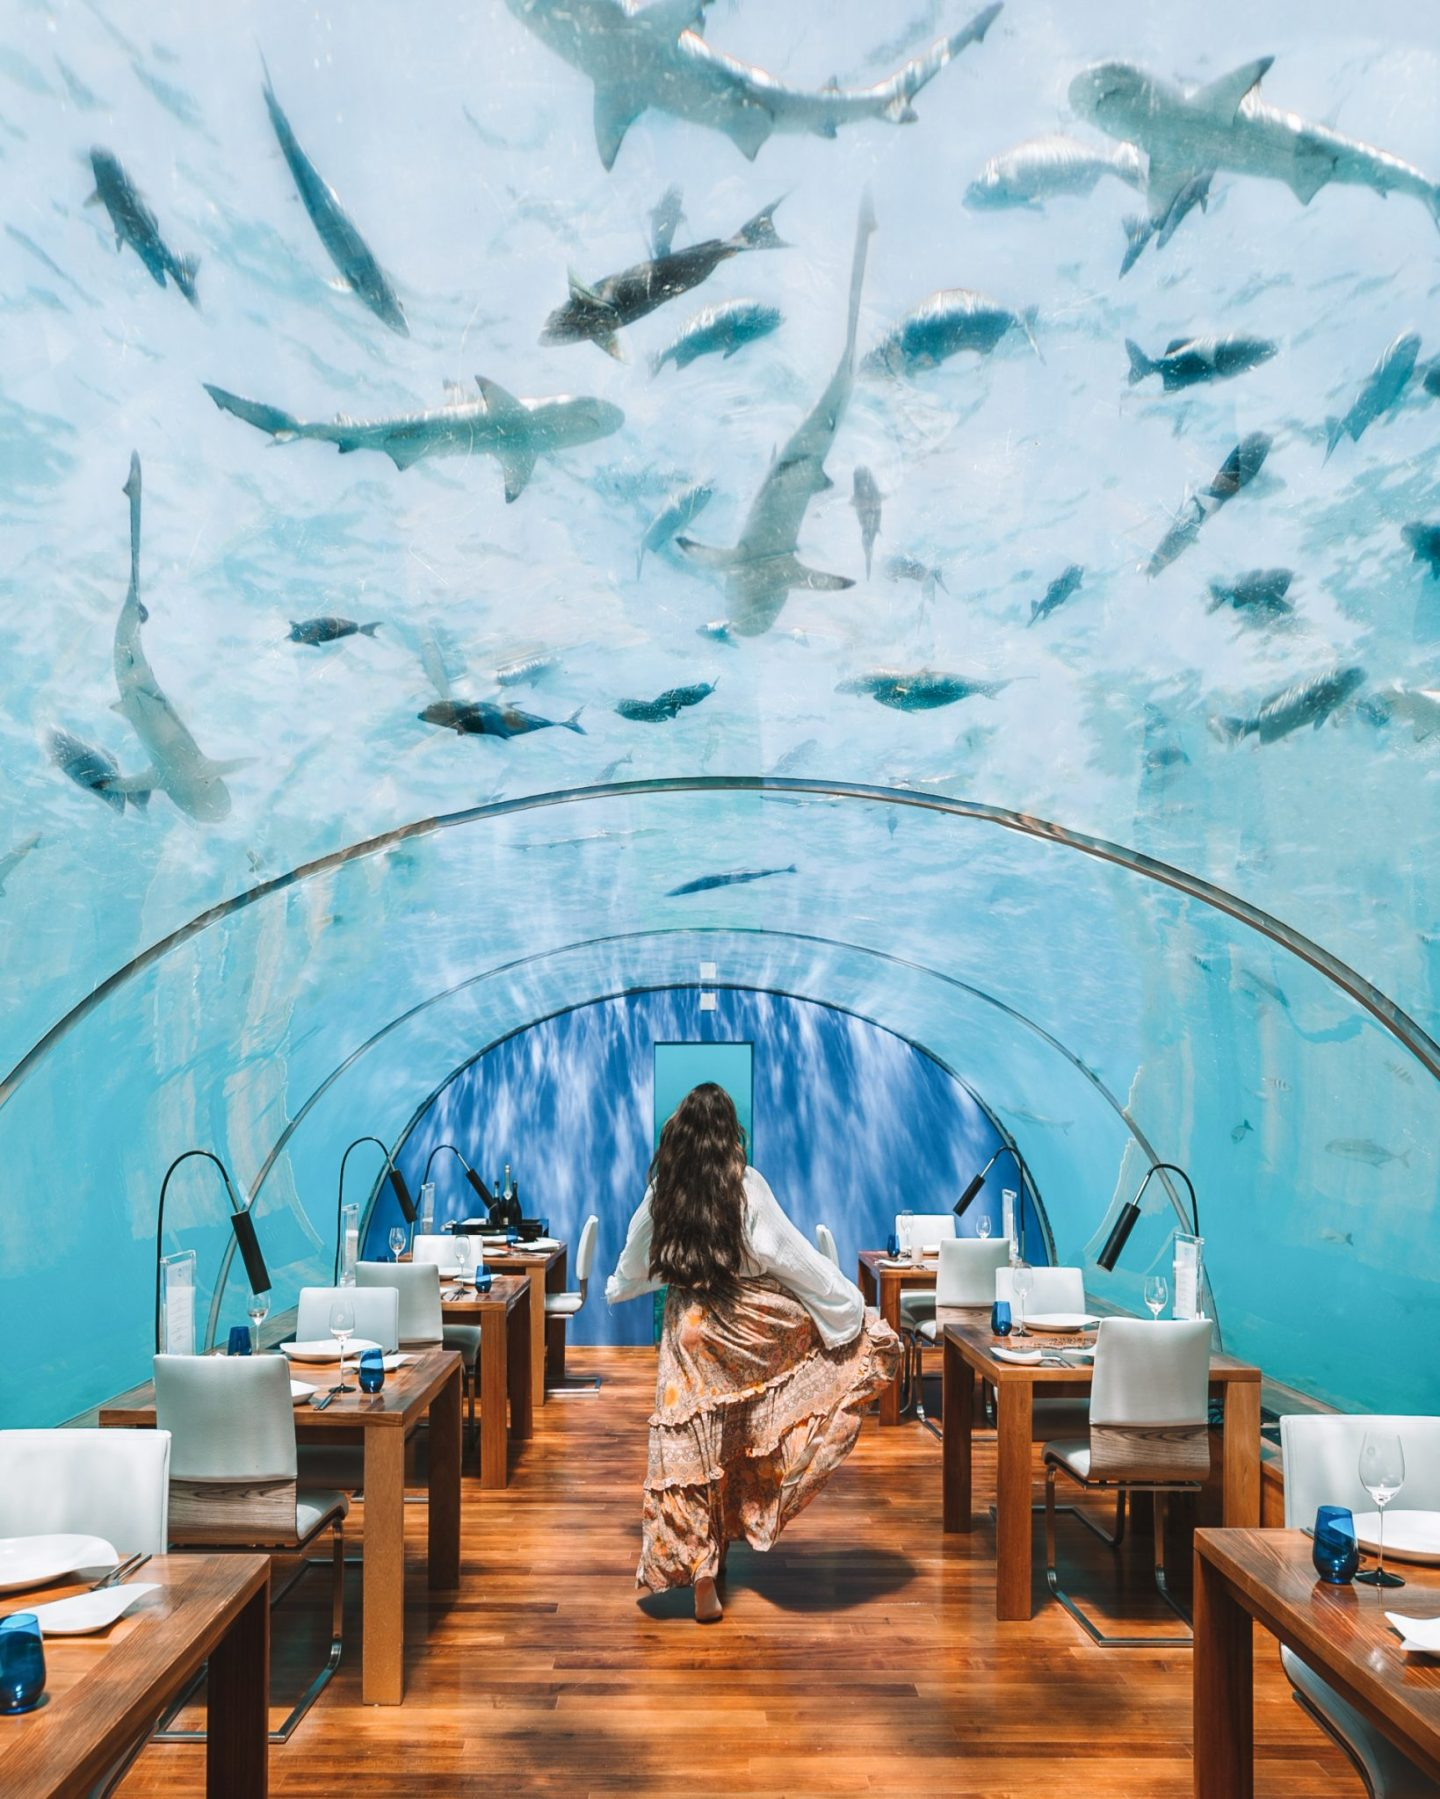 Girl walking in an undersea restaurant with sharks and fish above in the Maldives